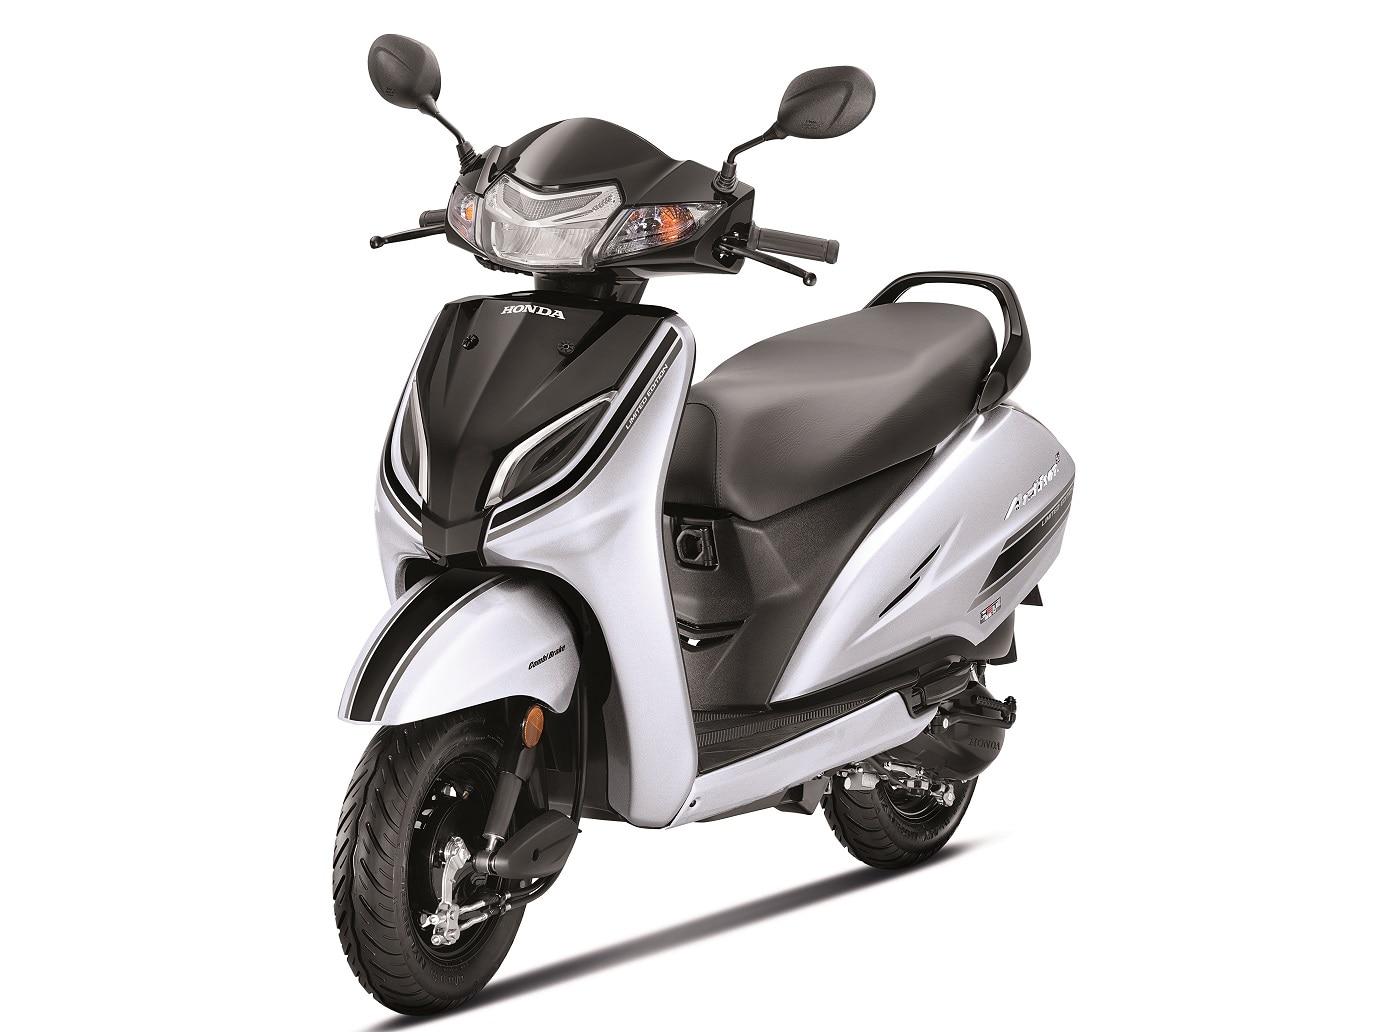 Honda Activa 5G Price in Hyderabad - Activa 5G On Road Price